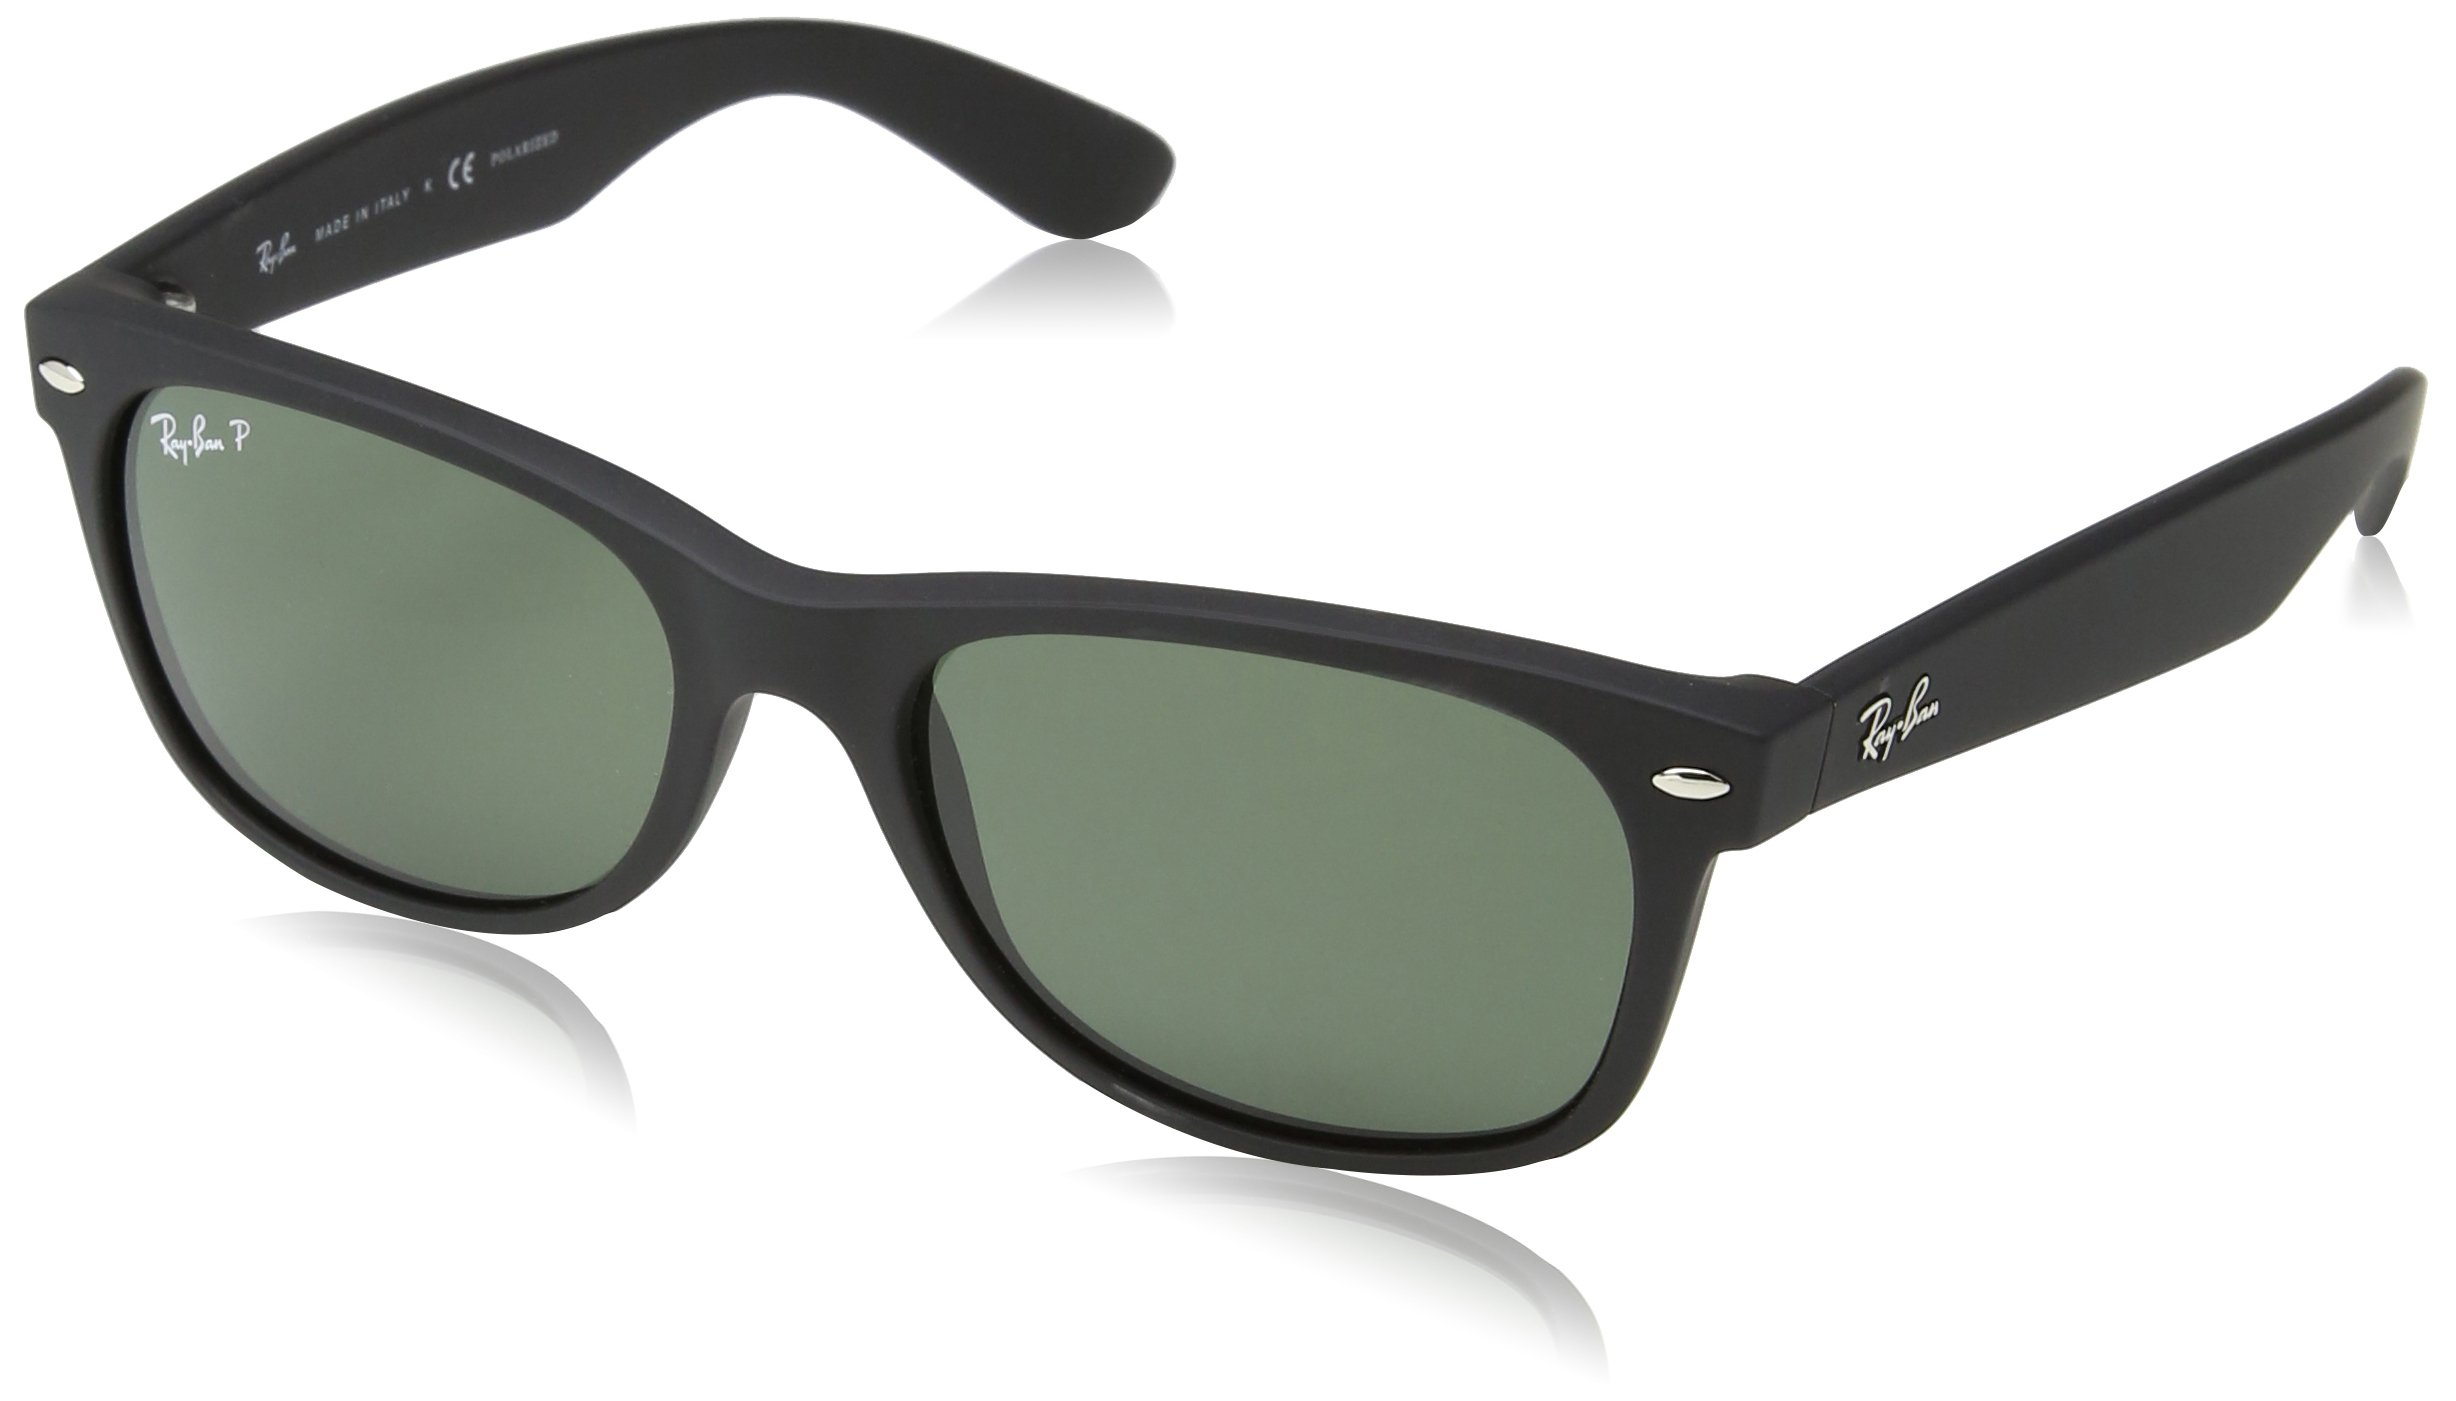 RAY-BAN RB2132 New Wayfarer Polarized Sunglasses, Black Rubber/Polarized Green, 55 mm by RAY-BAN